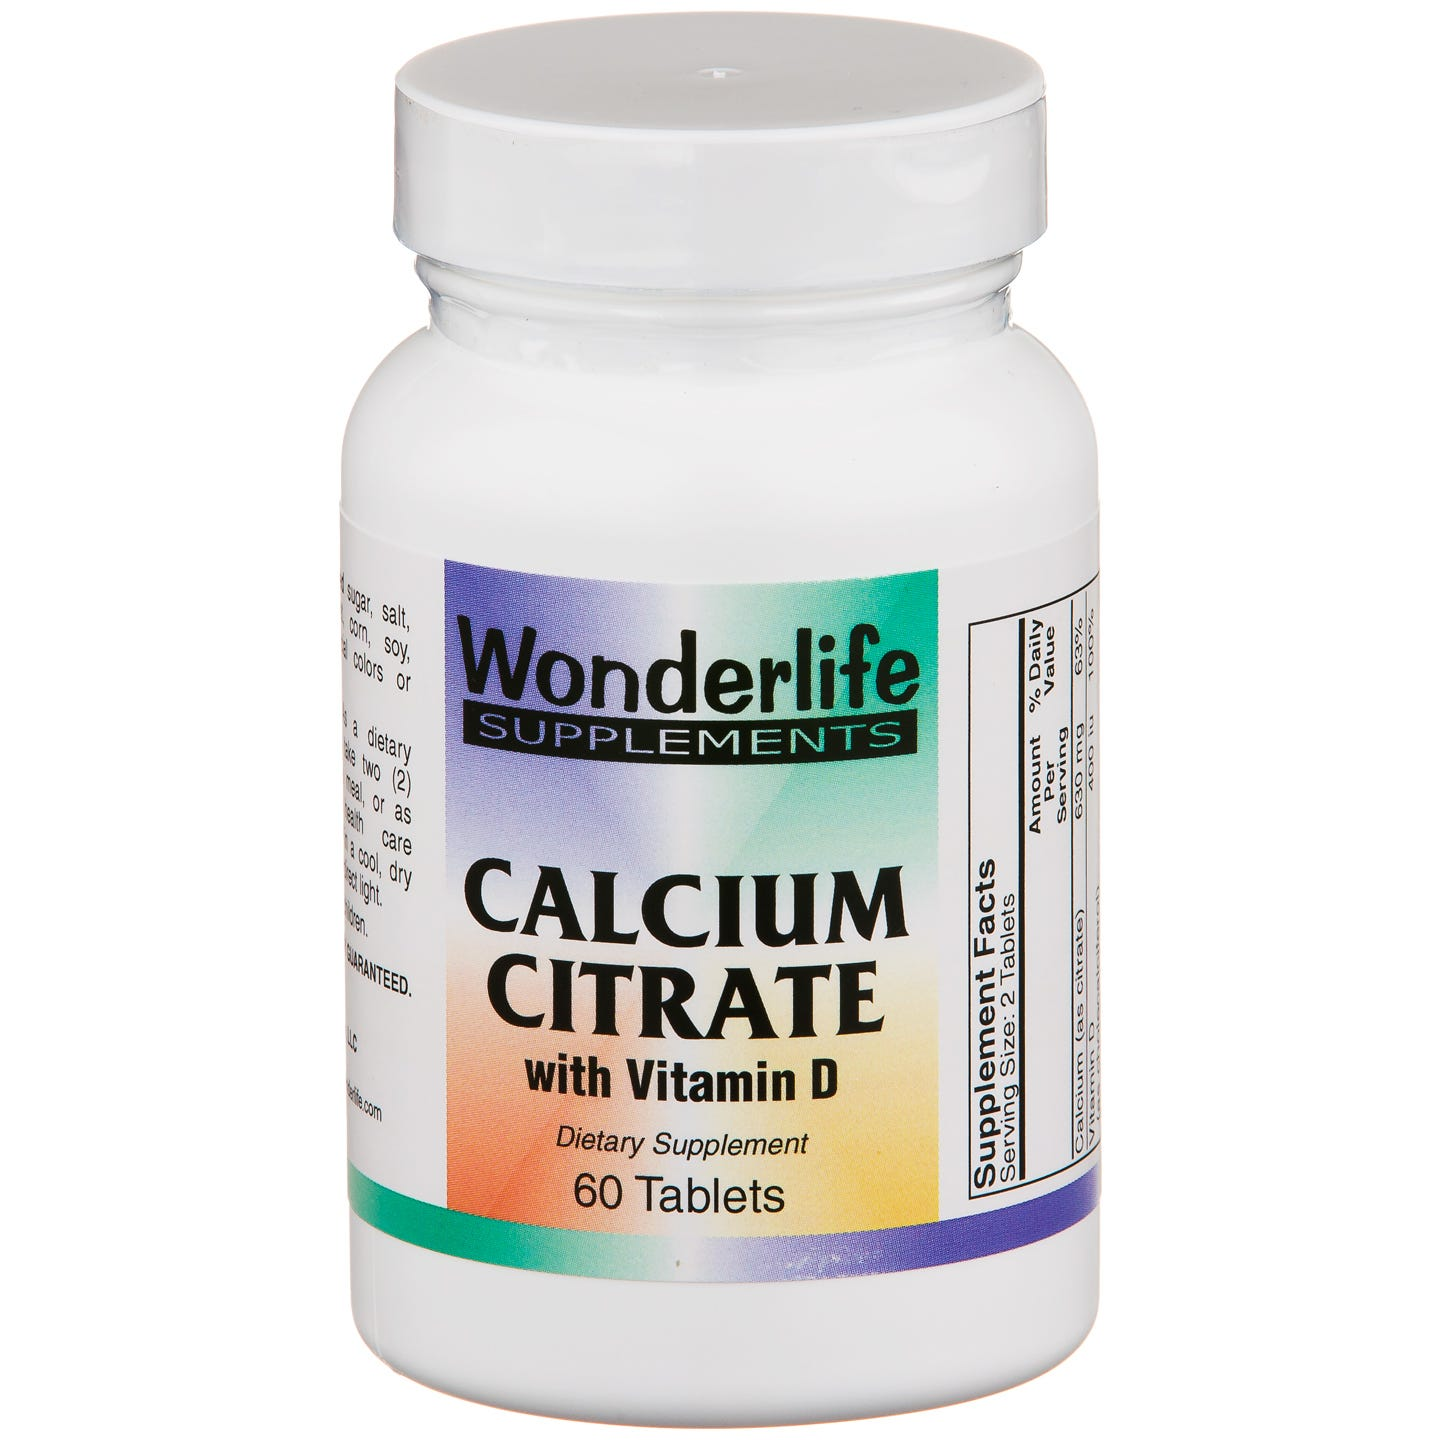 Calcium Citrate & Vitamin D (60 ct) - Wonderlife - Rapid Diet Weight Loss Products Shop